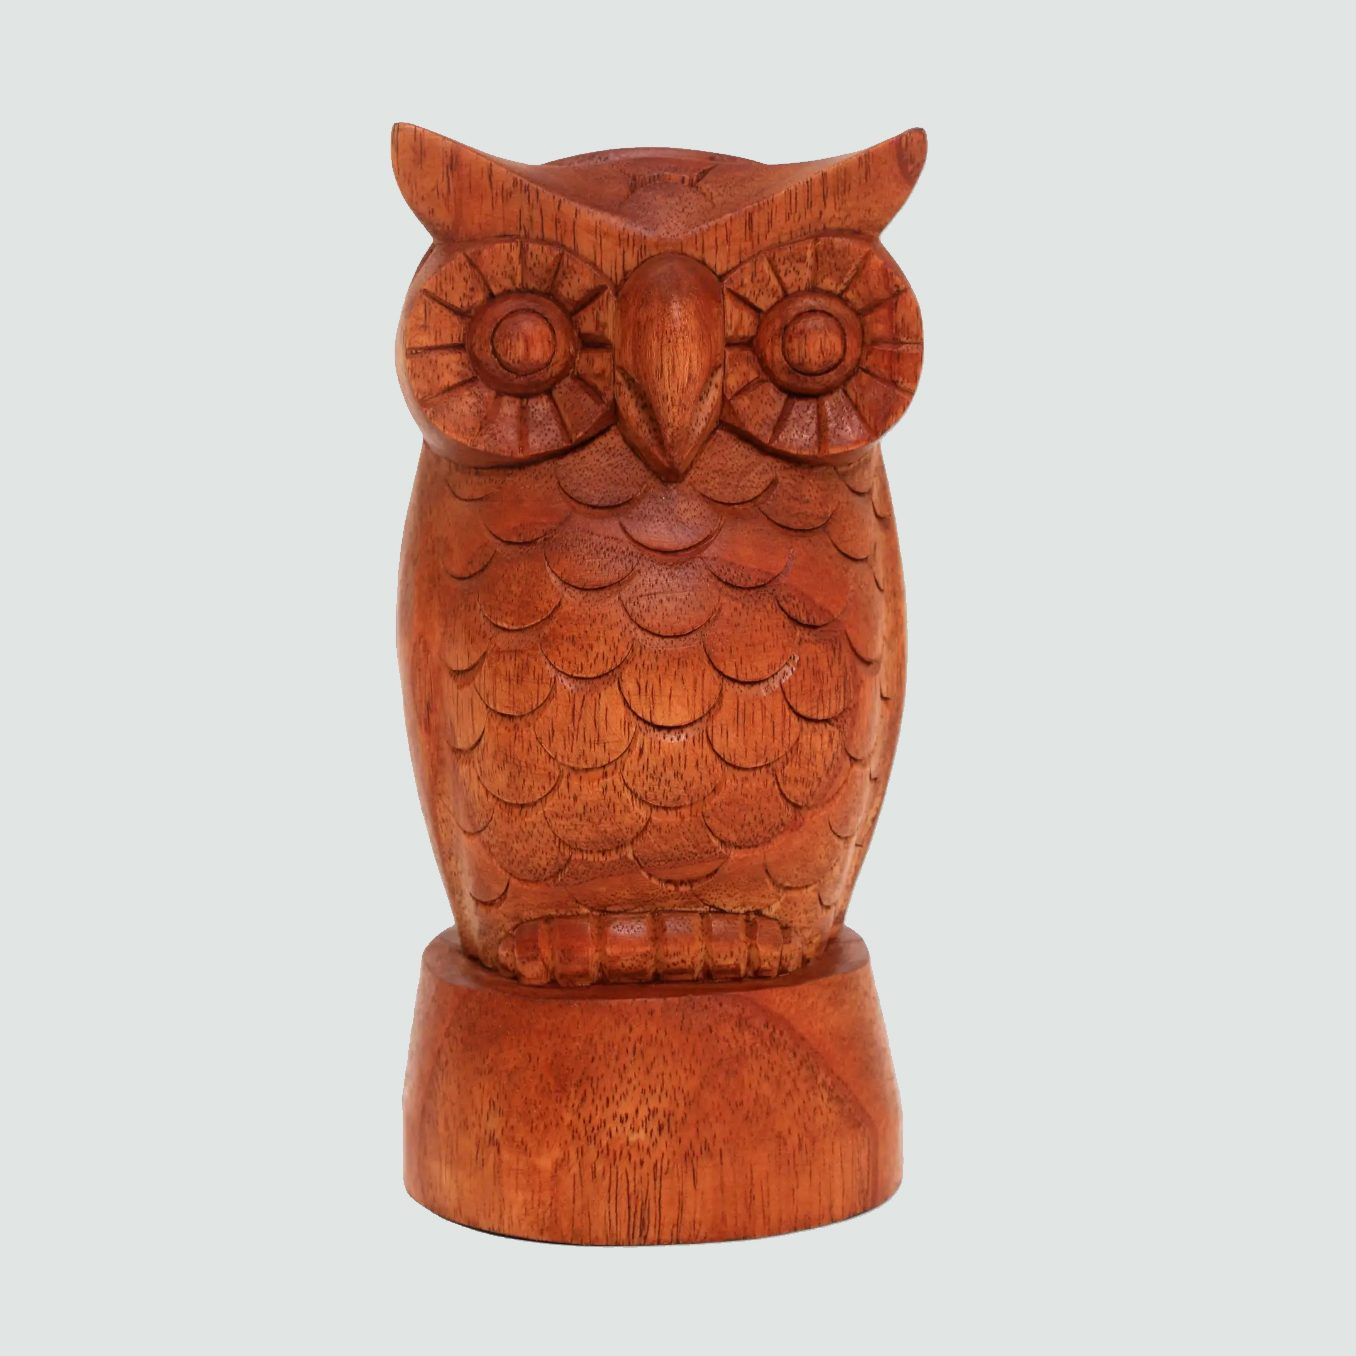 UNICEF Wise Owl Eyeglasses Holder